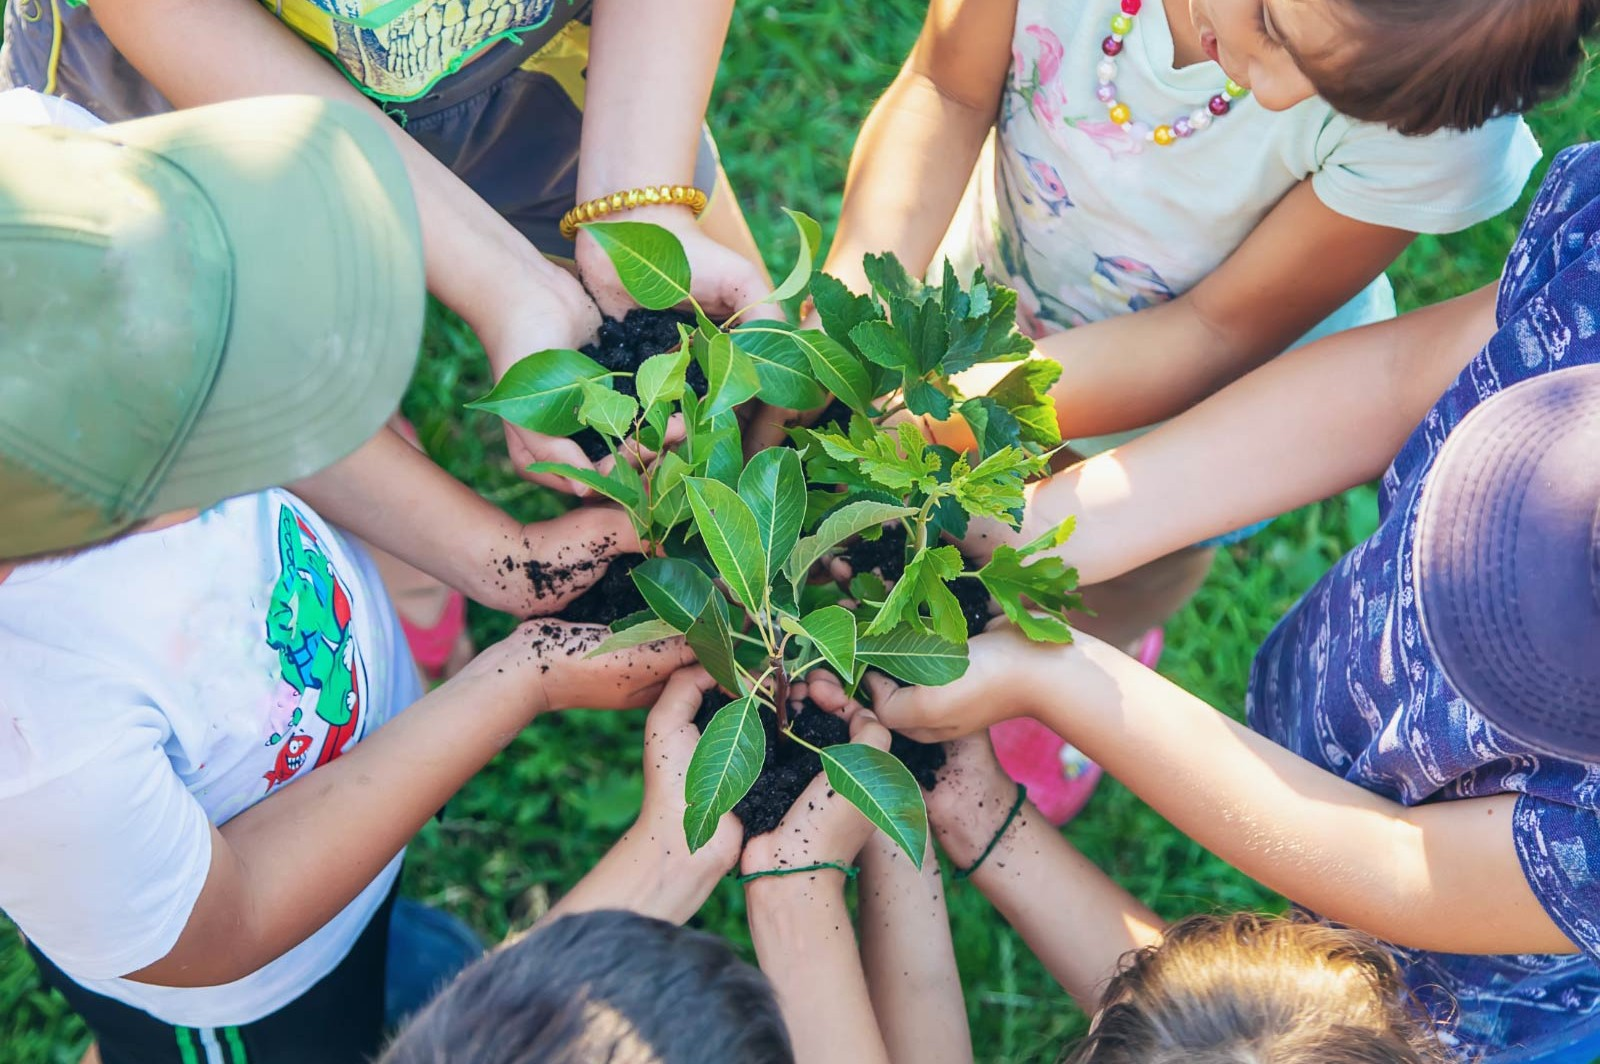 Children joined together to hold plants